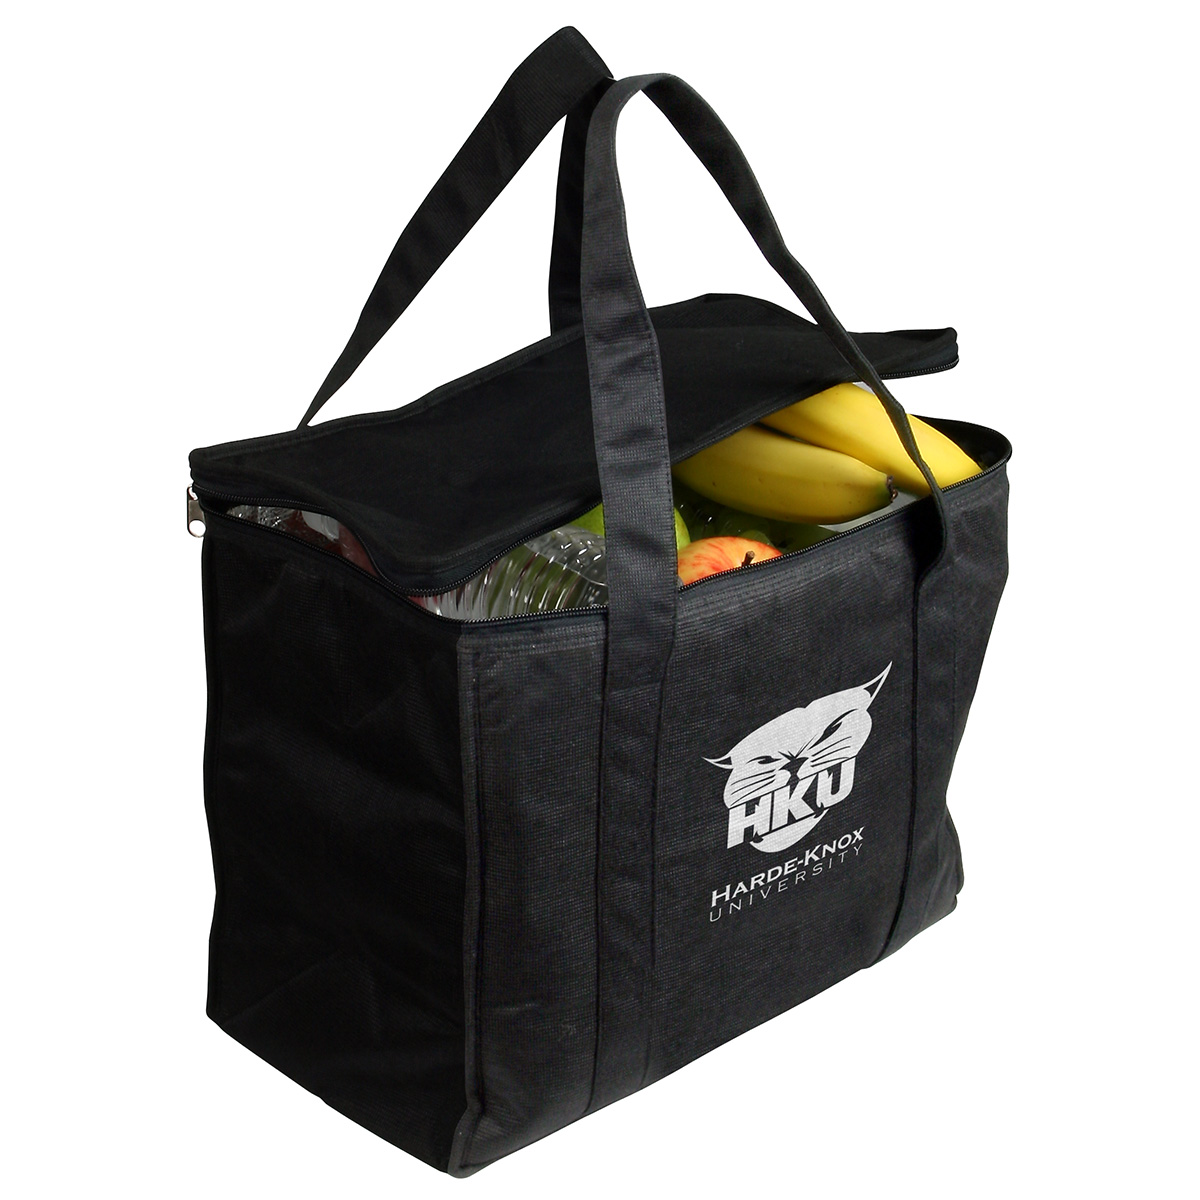 Picnic Recycled P.E.T. Cooler Bag, WBA-PR10 - 1 Colour Imprint